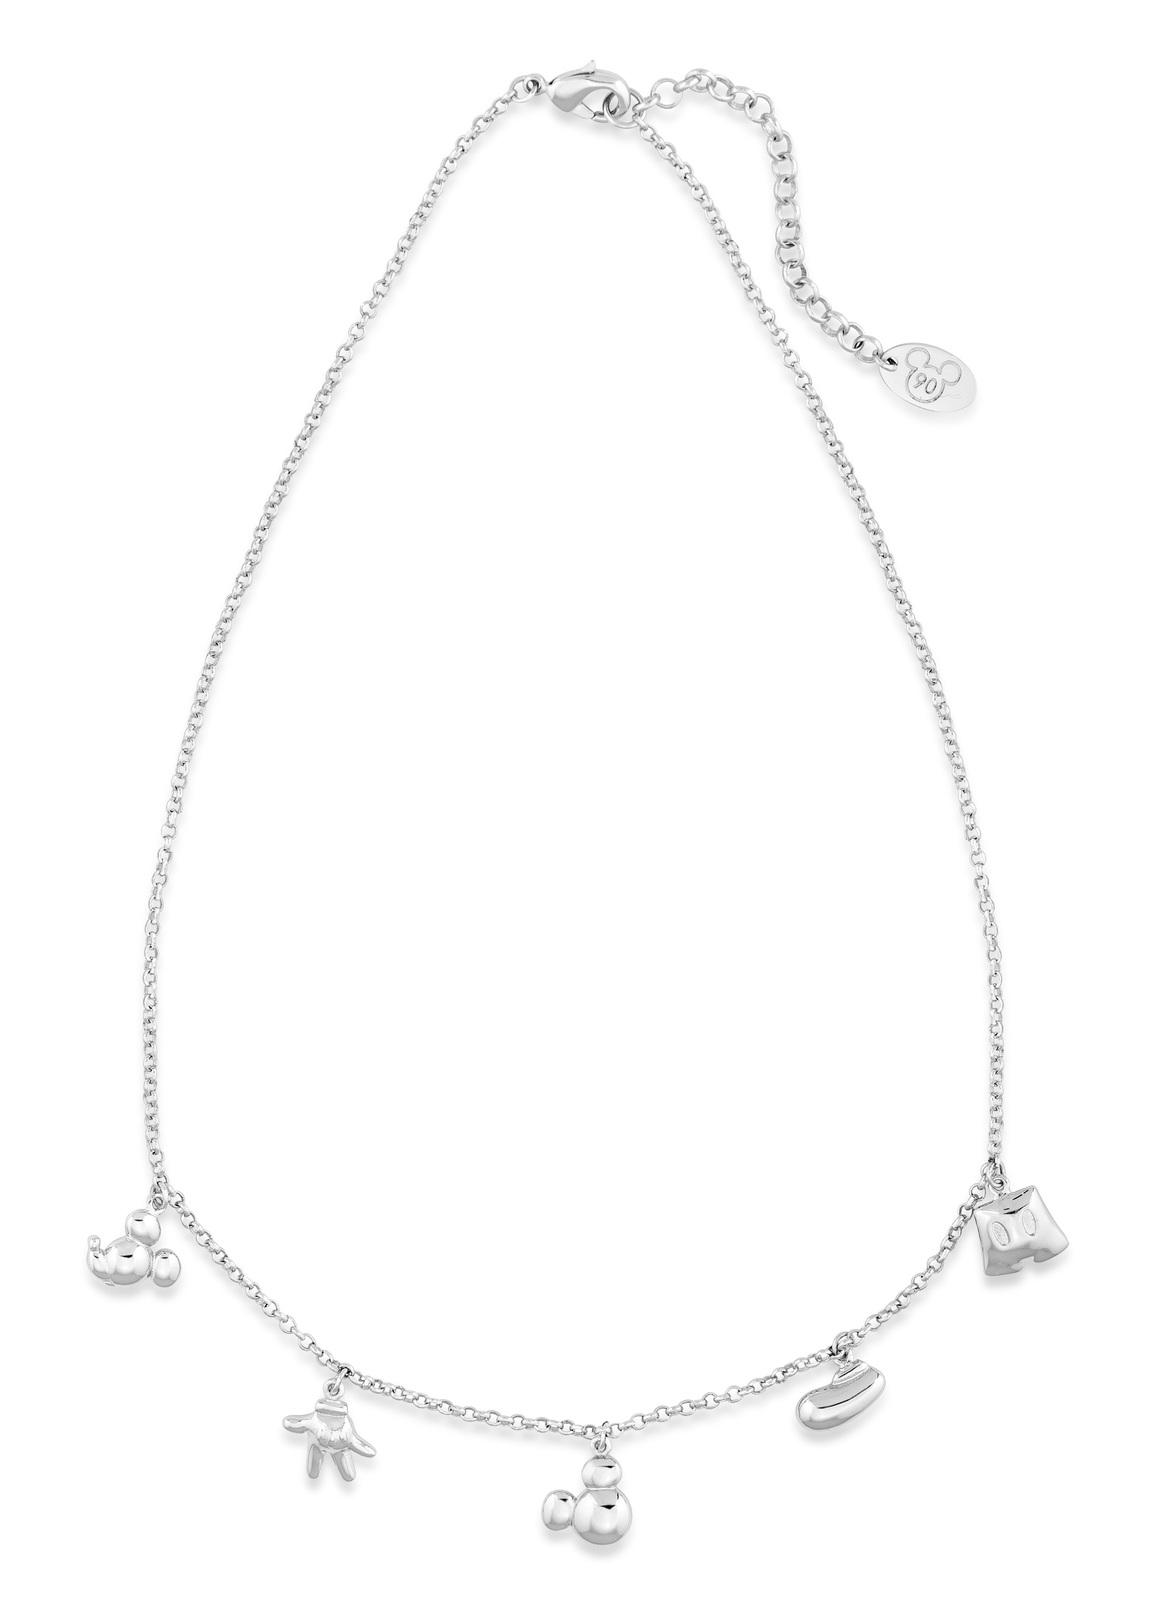 Couture Kingdom: Disney - Mickey Mouse Icon Charm Necklace (White Gold) image